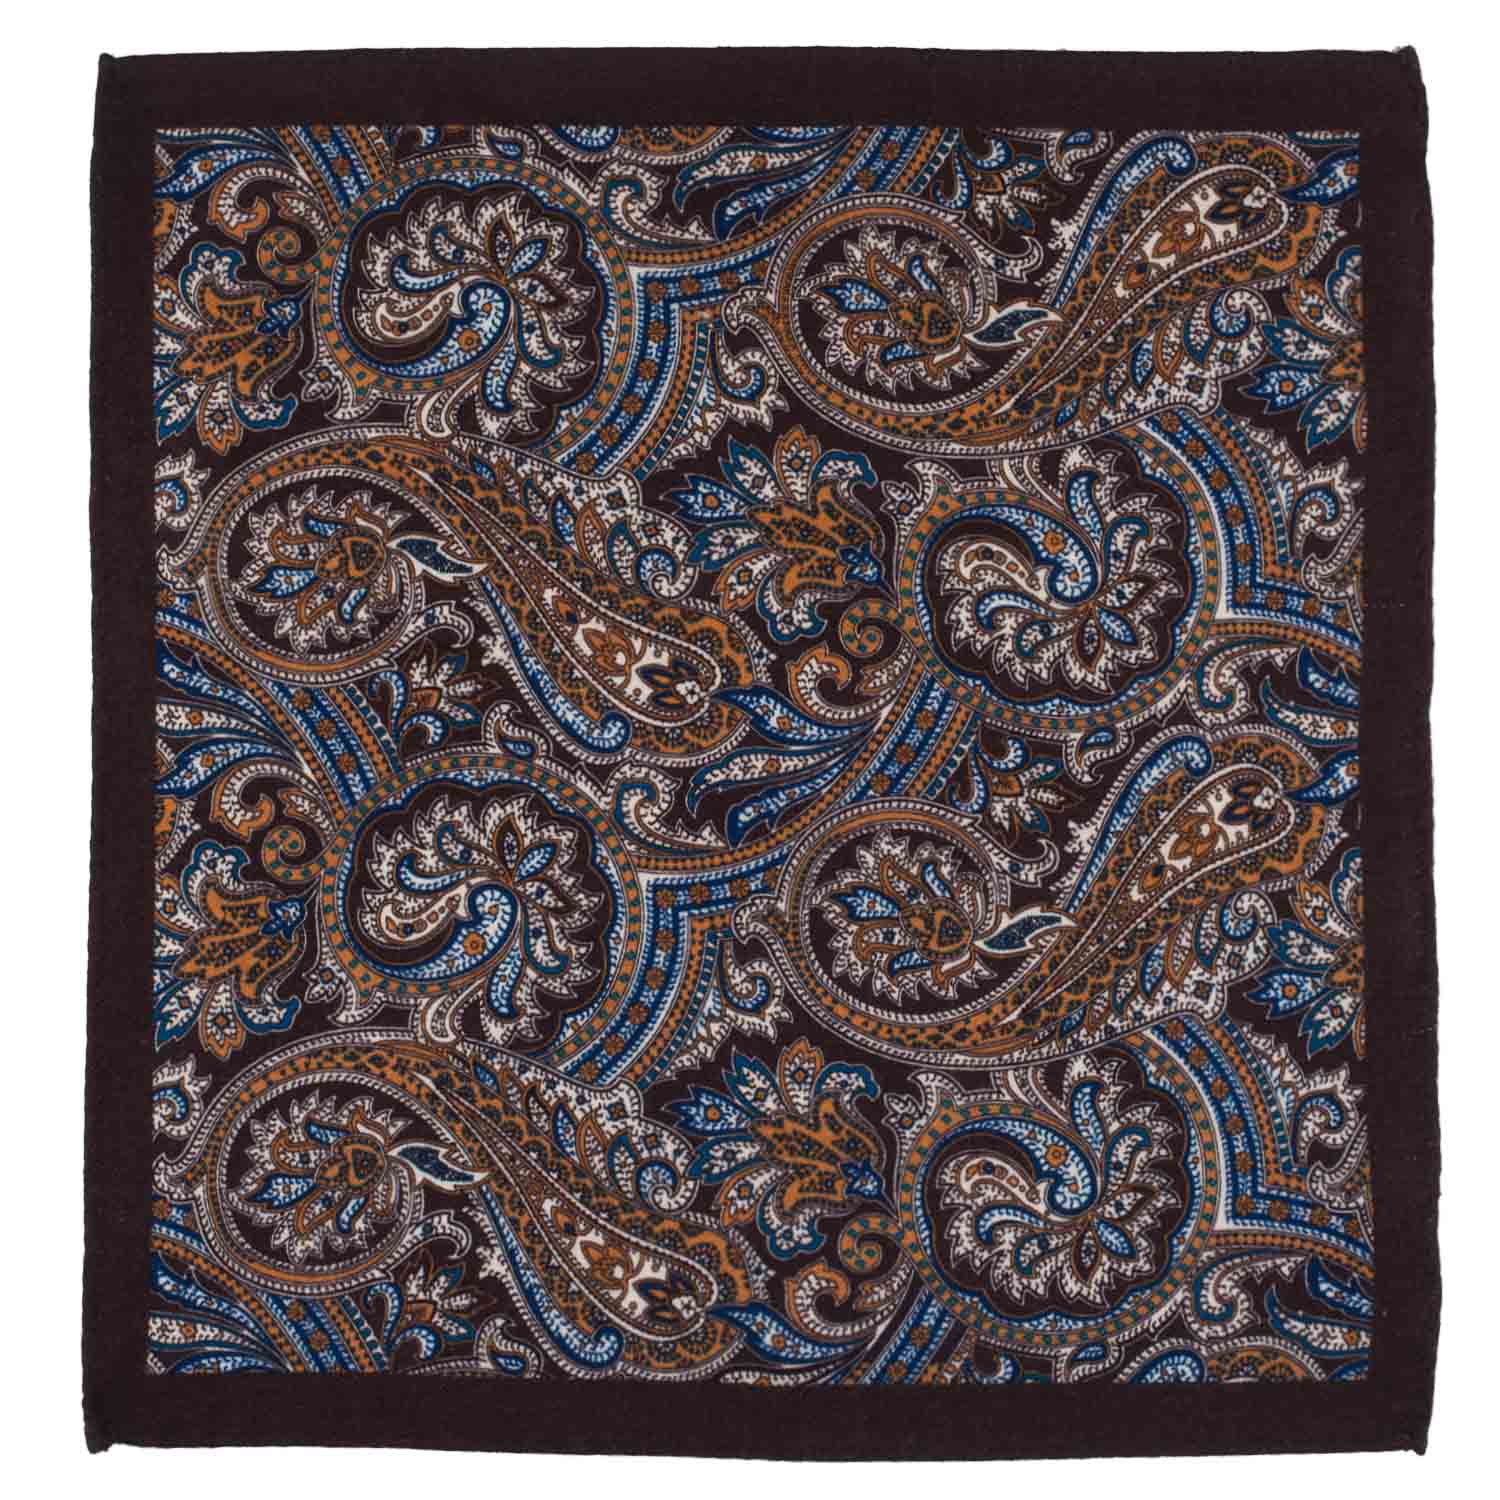 Serpentine Paisley Brown Wool Pocket Square For Me By The Tie Hub